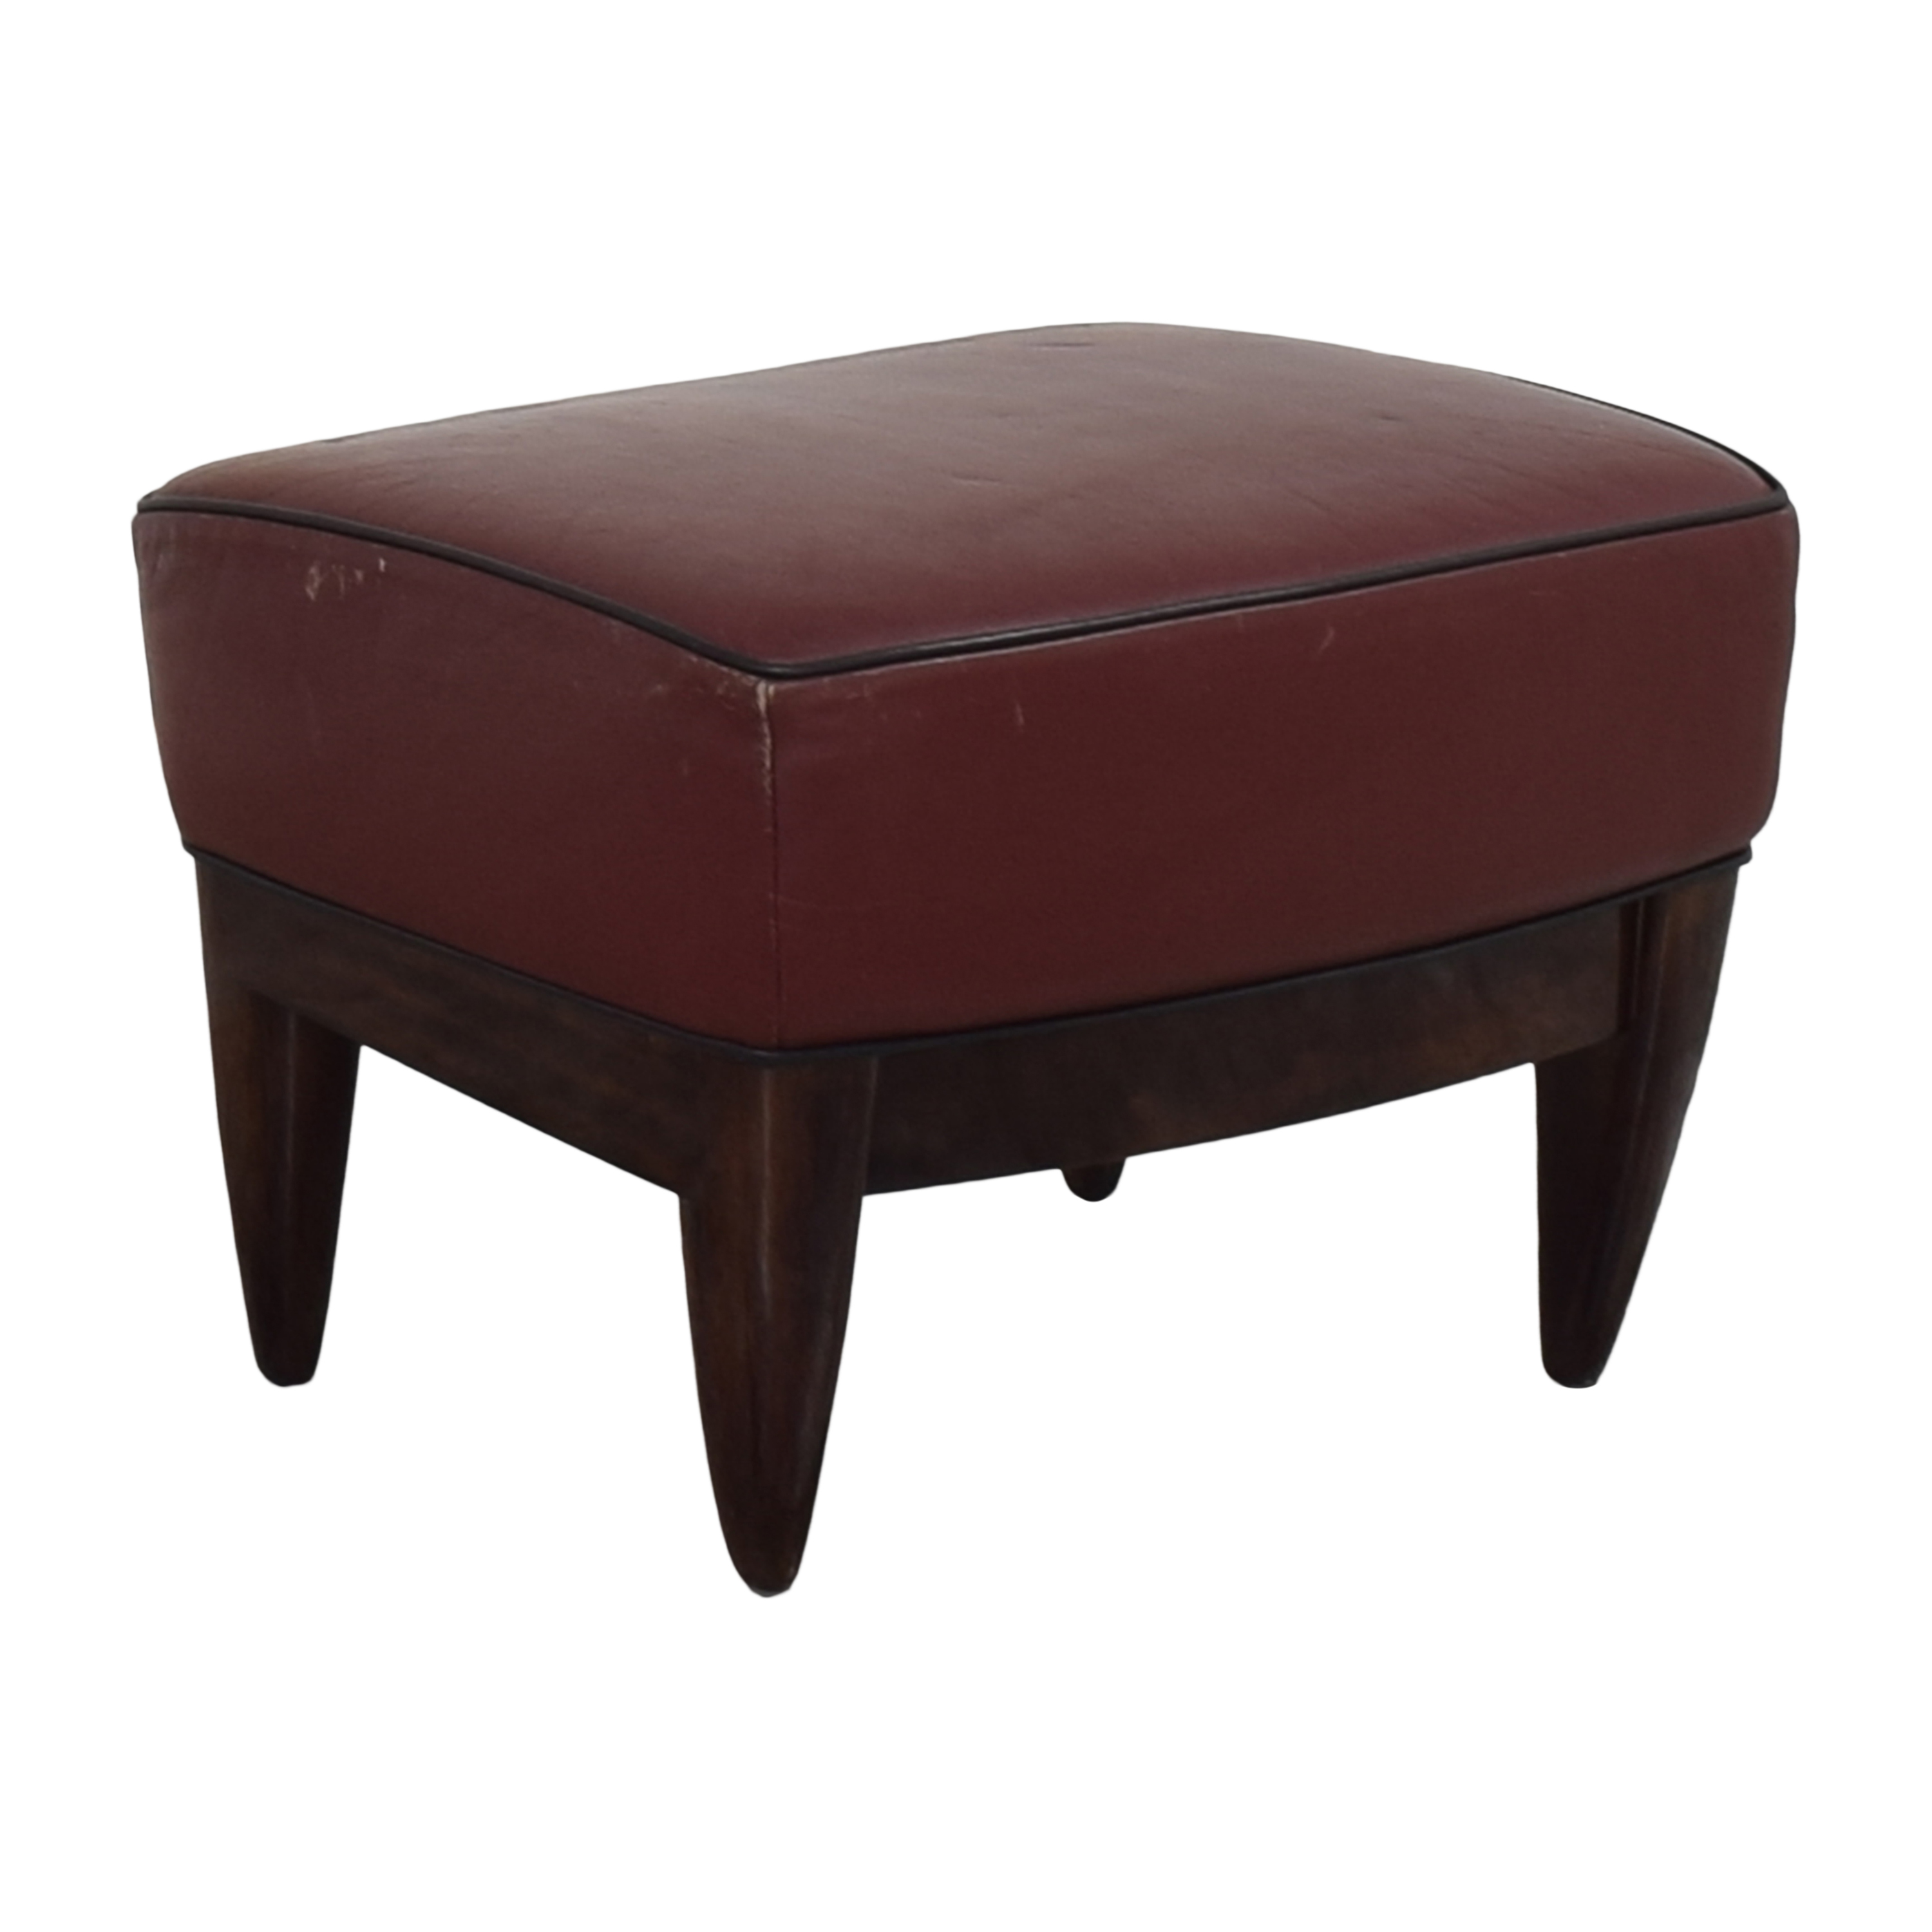 Pace Collection i4Mariani for Pace Collection Ottoman